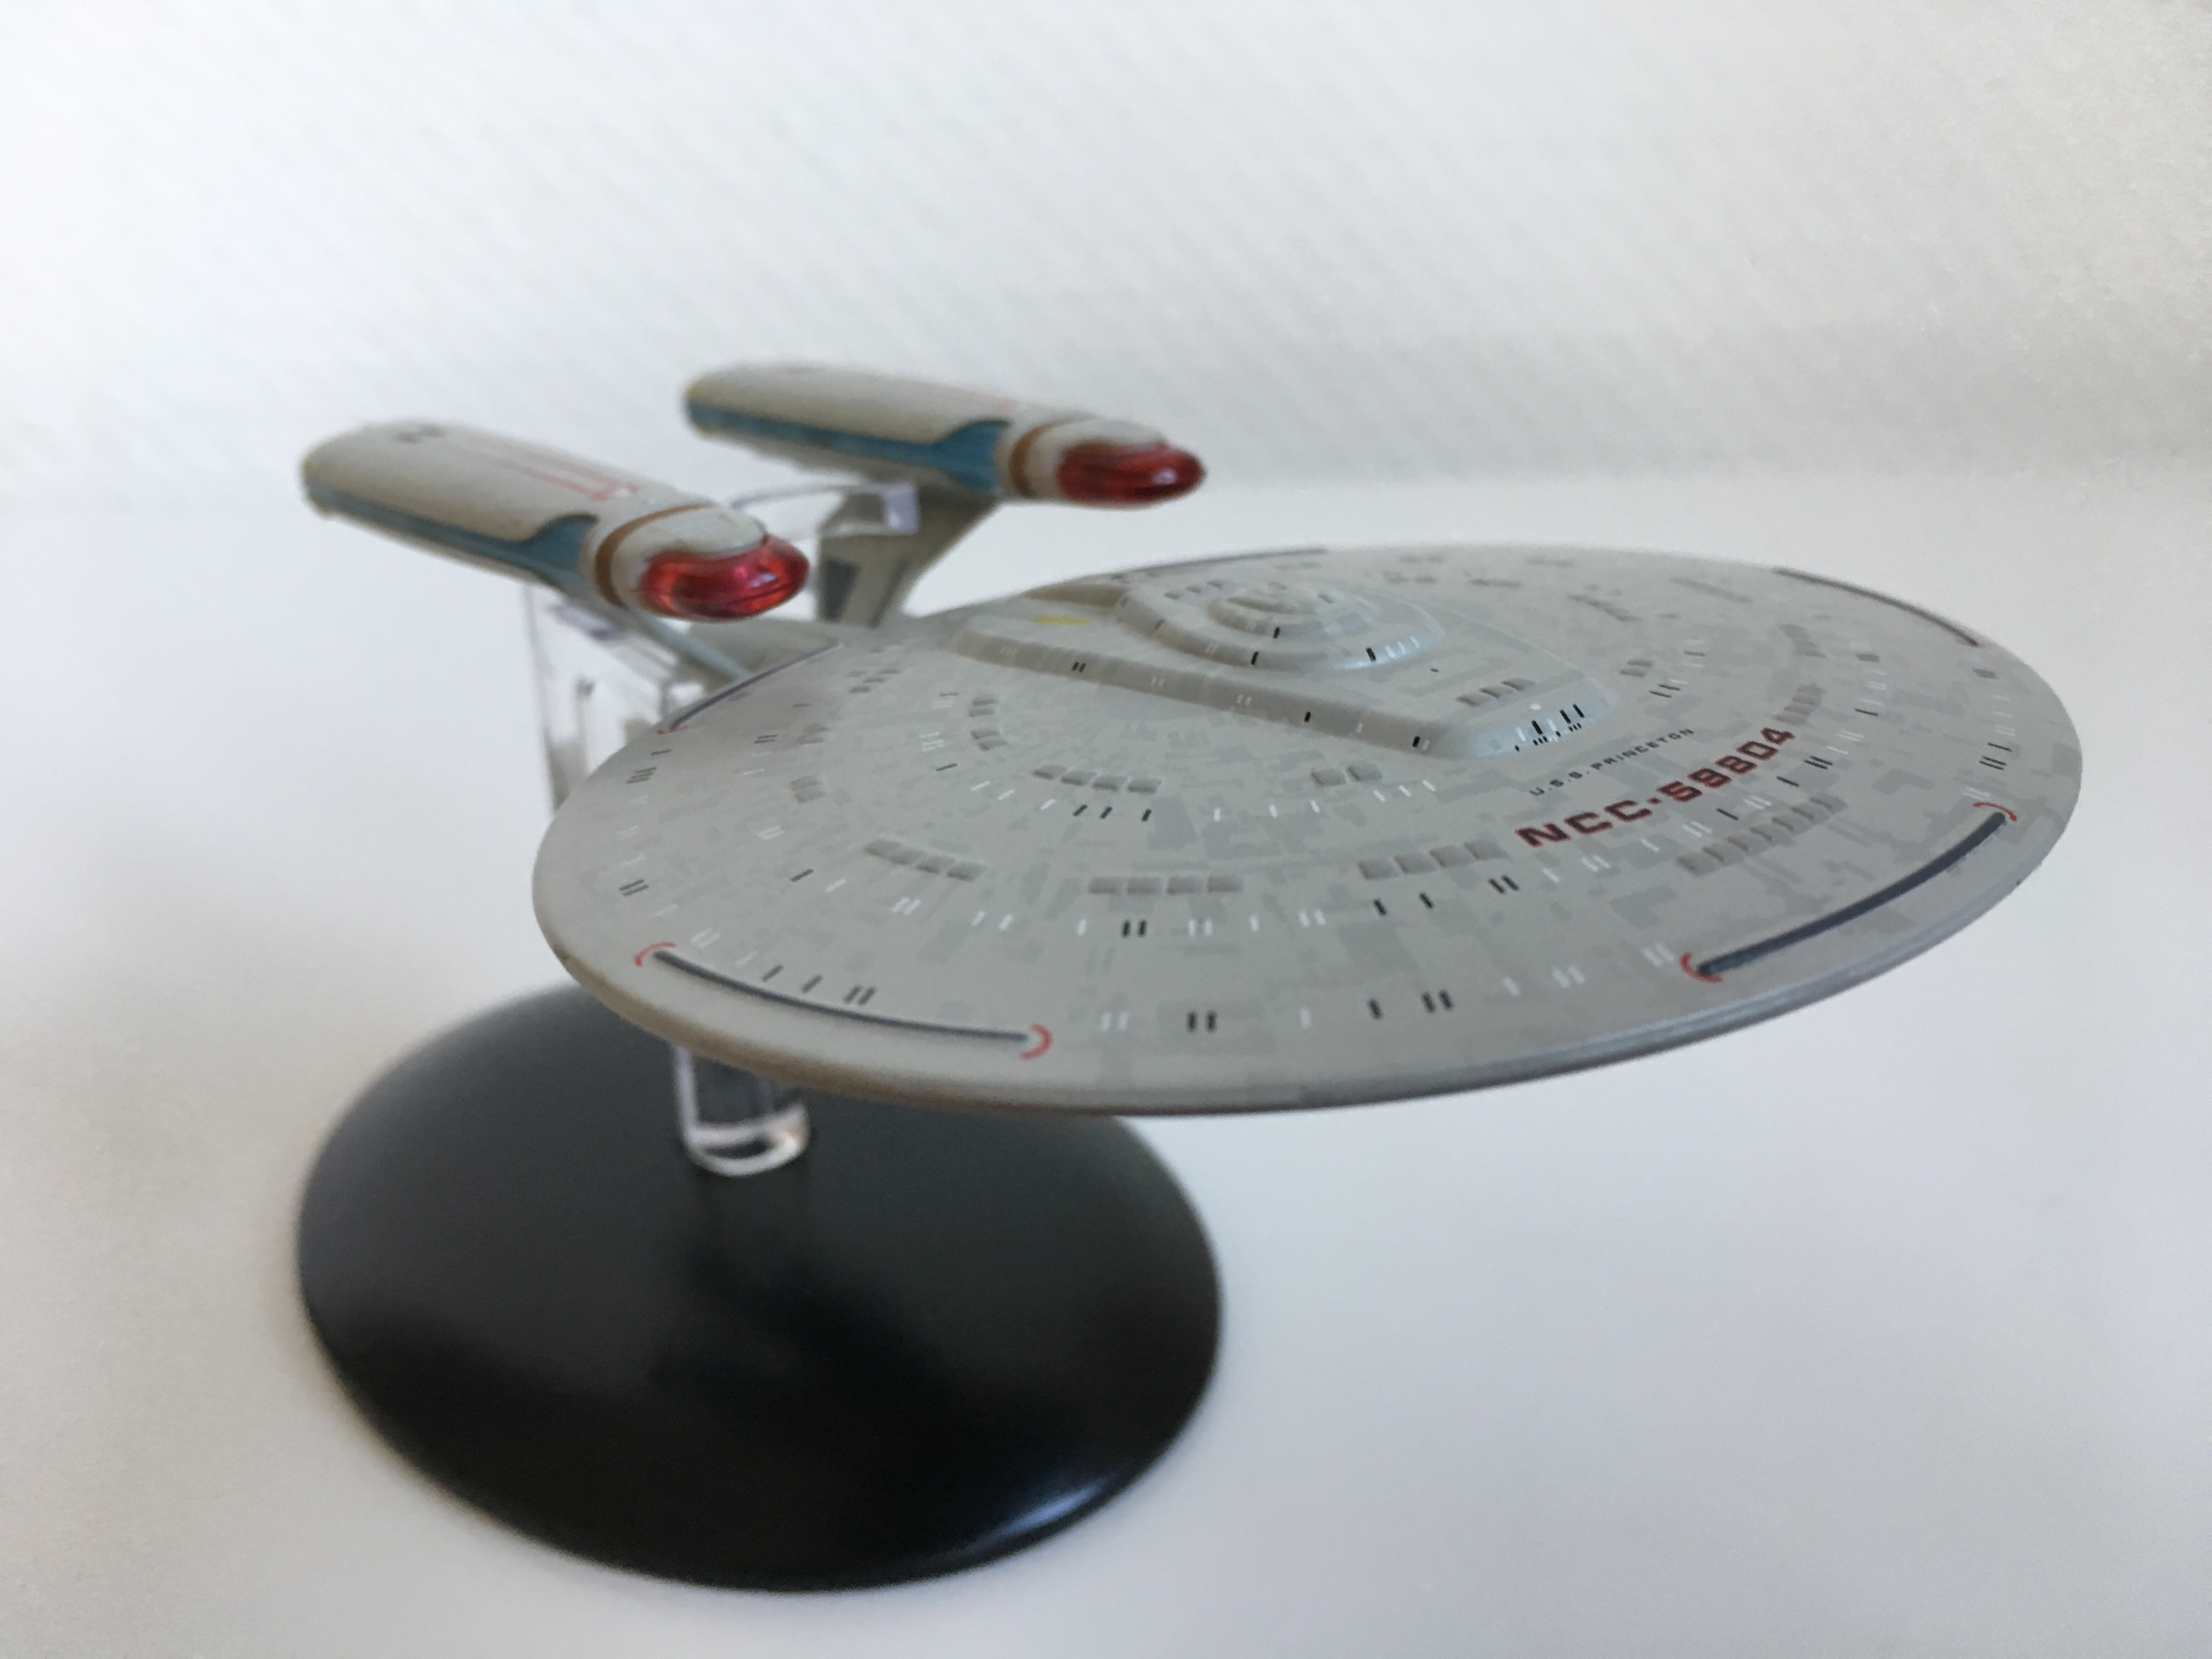 Die USS Princeton aus Star Trek: The Next Generation. Foto: Star Trek HD